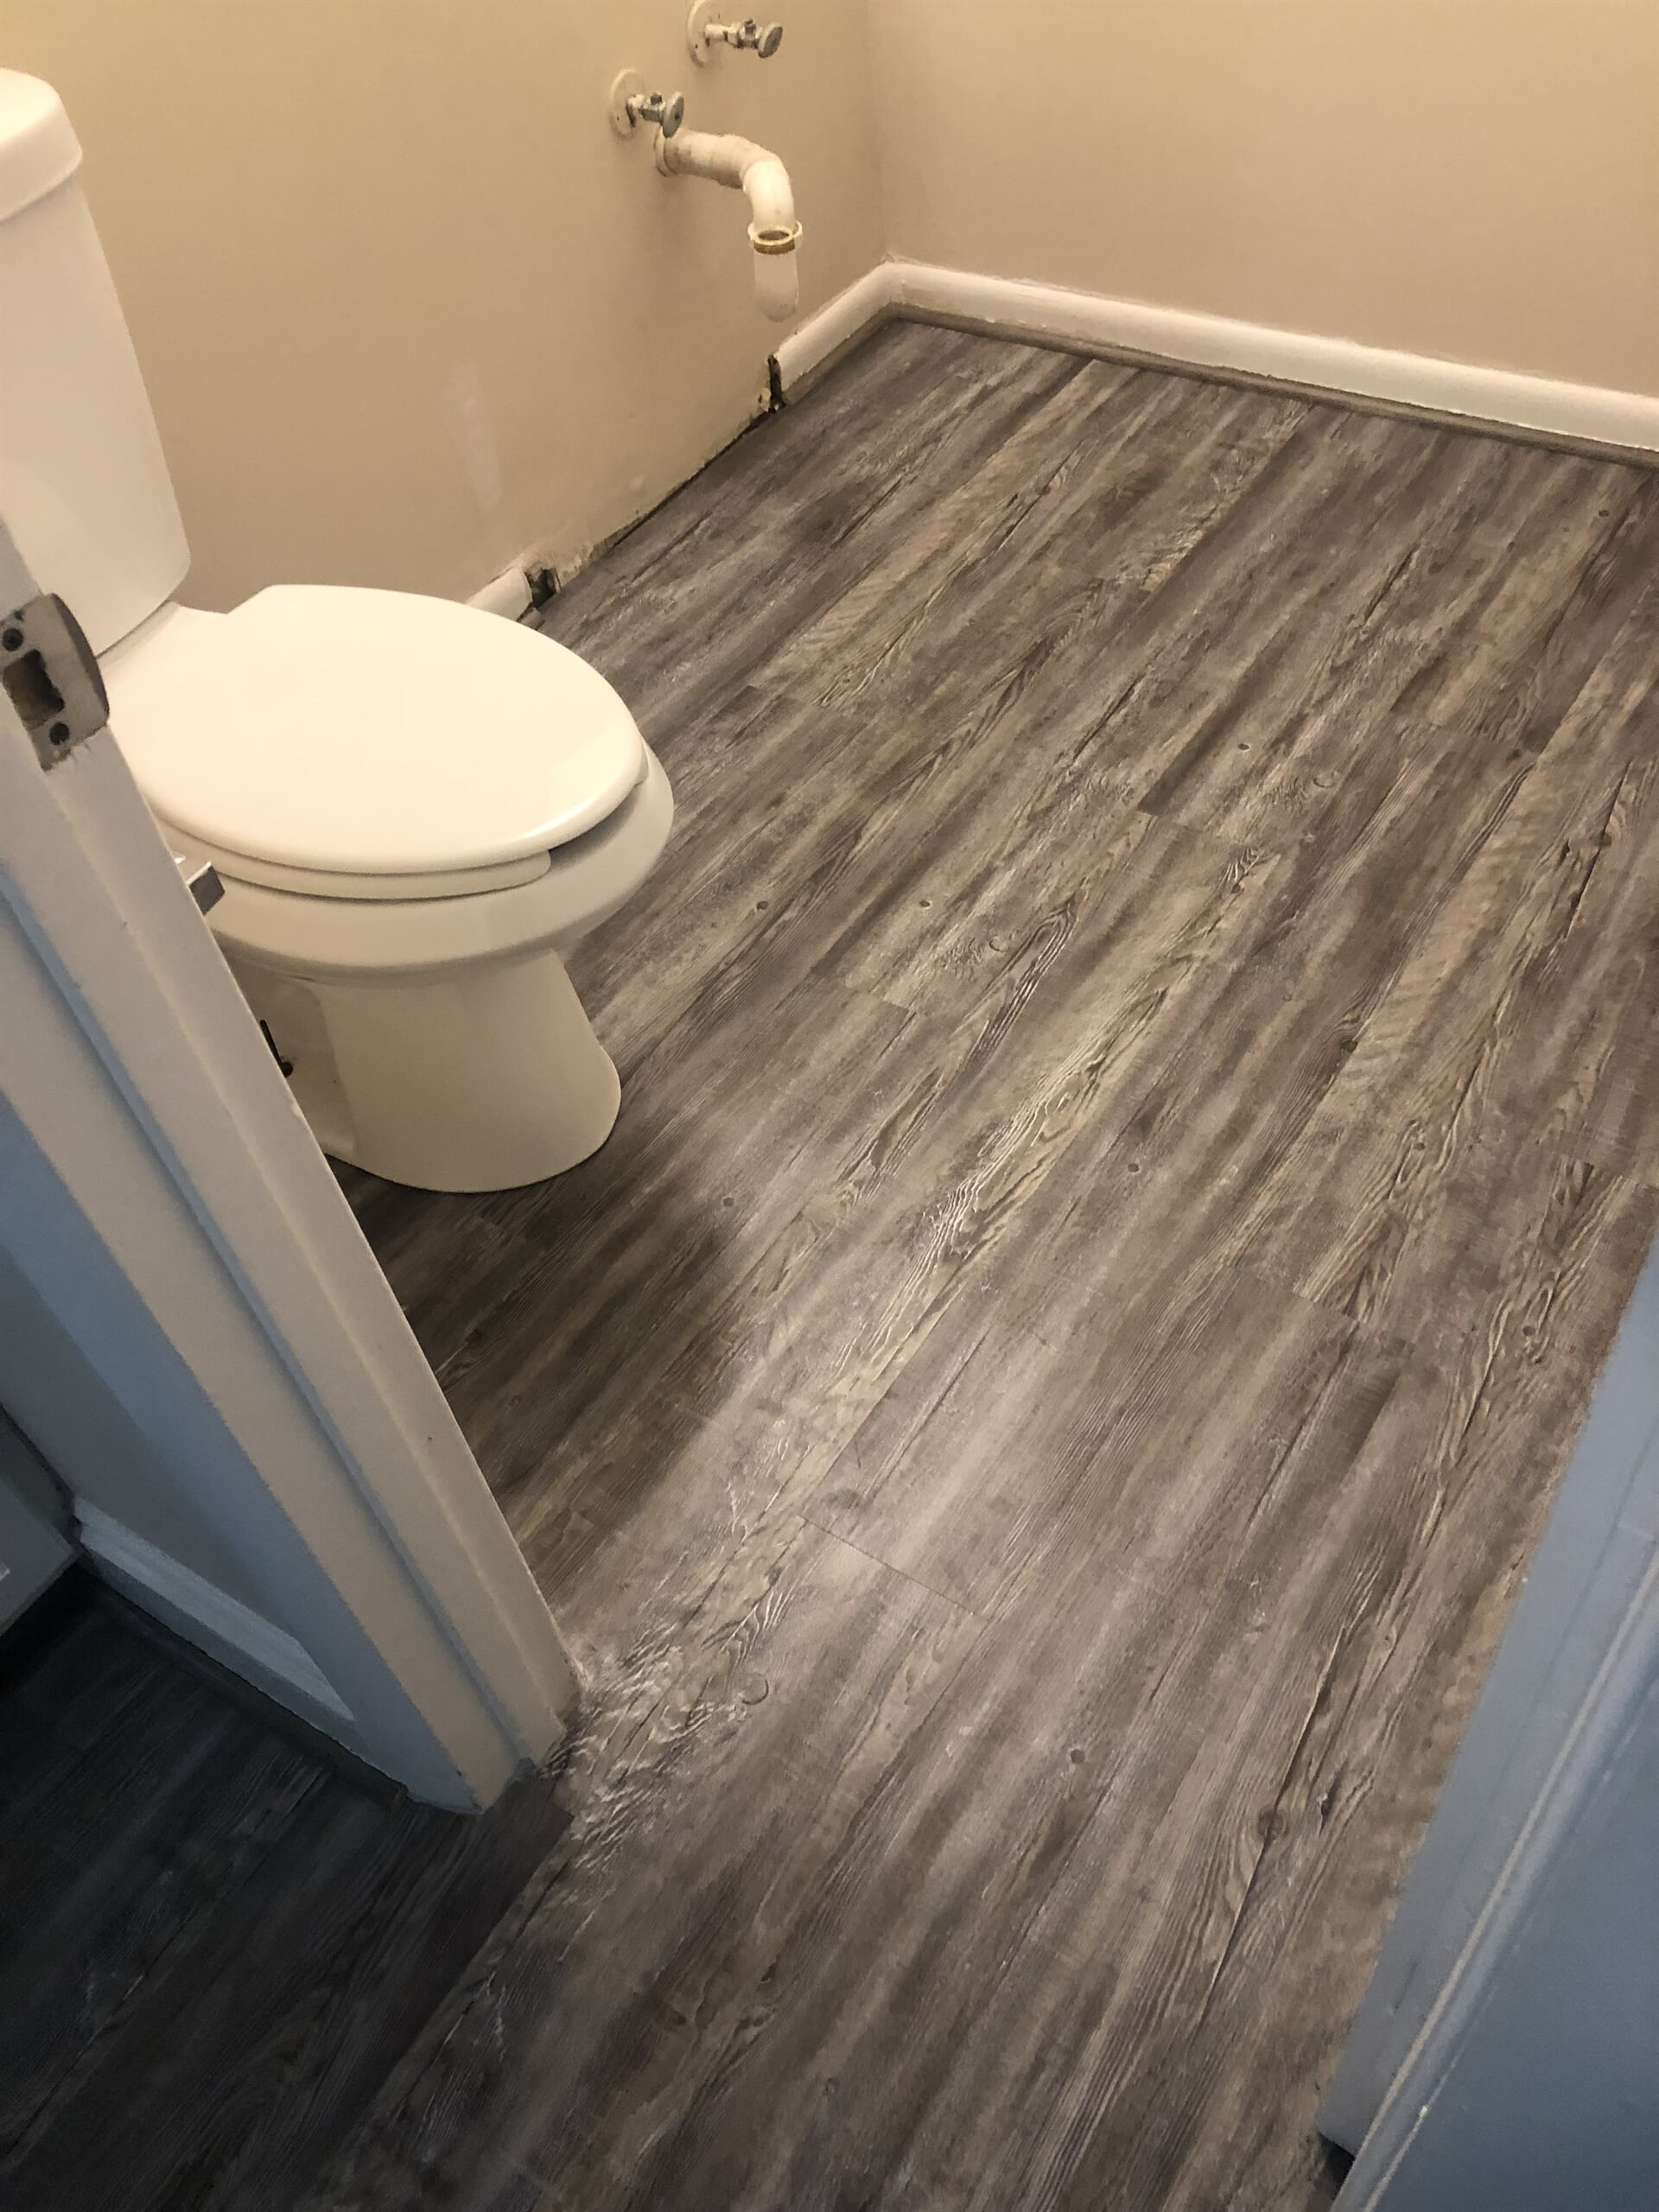 Waterproof wood look floors in Howard County, MD from Andonian's Carpet Warehouse